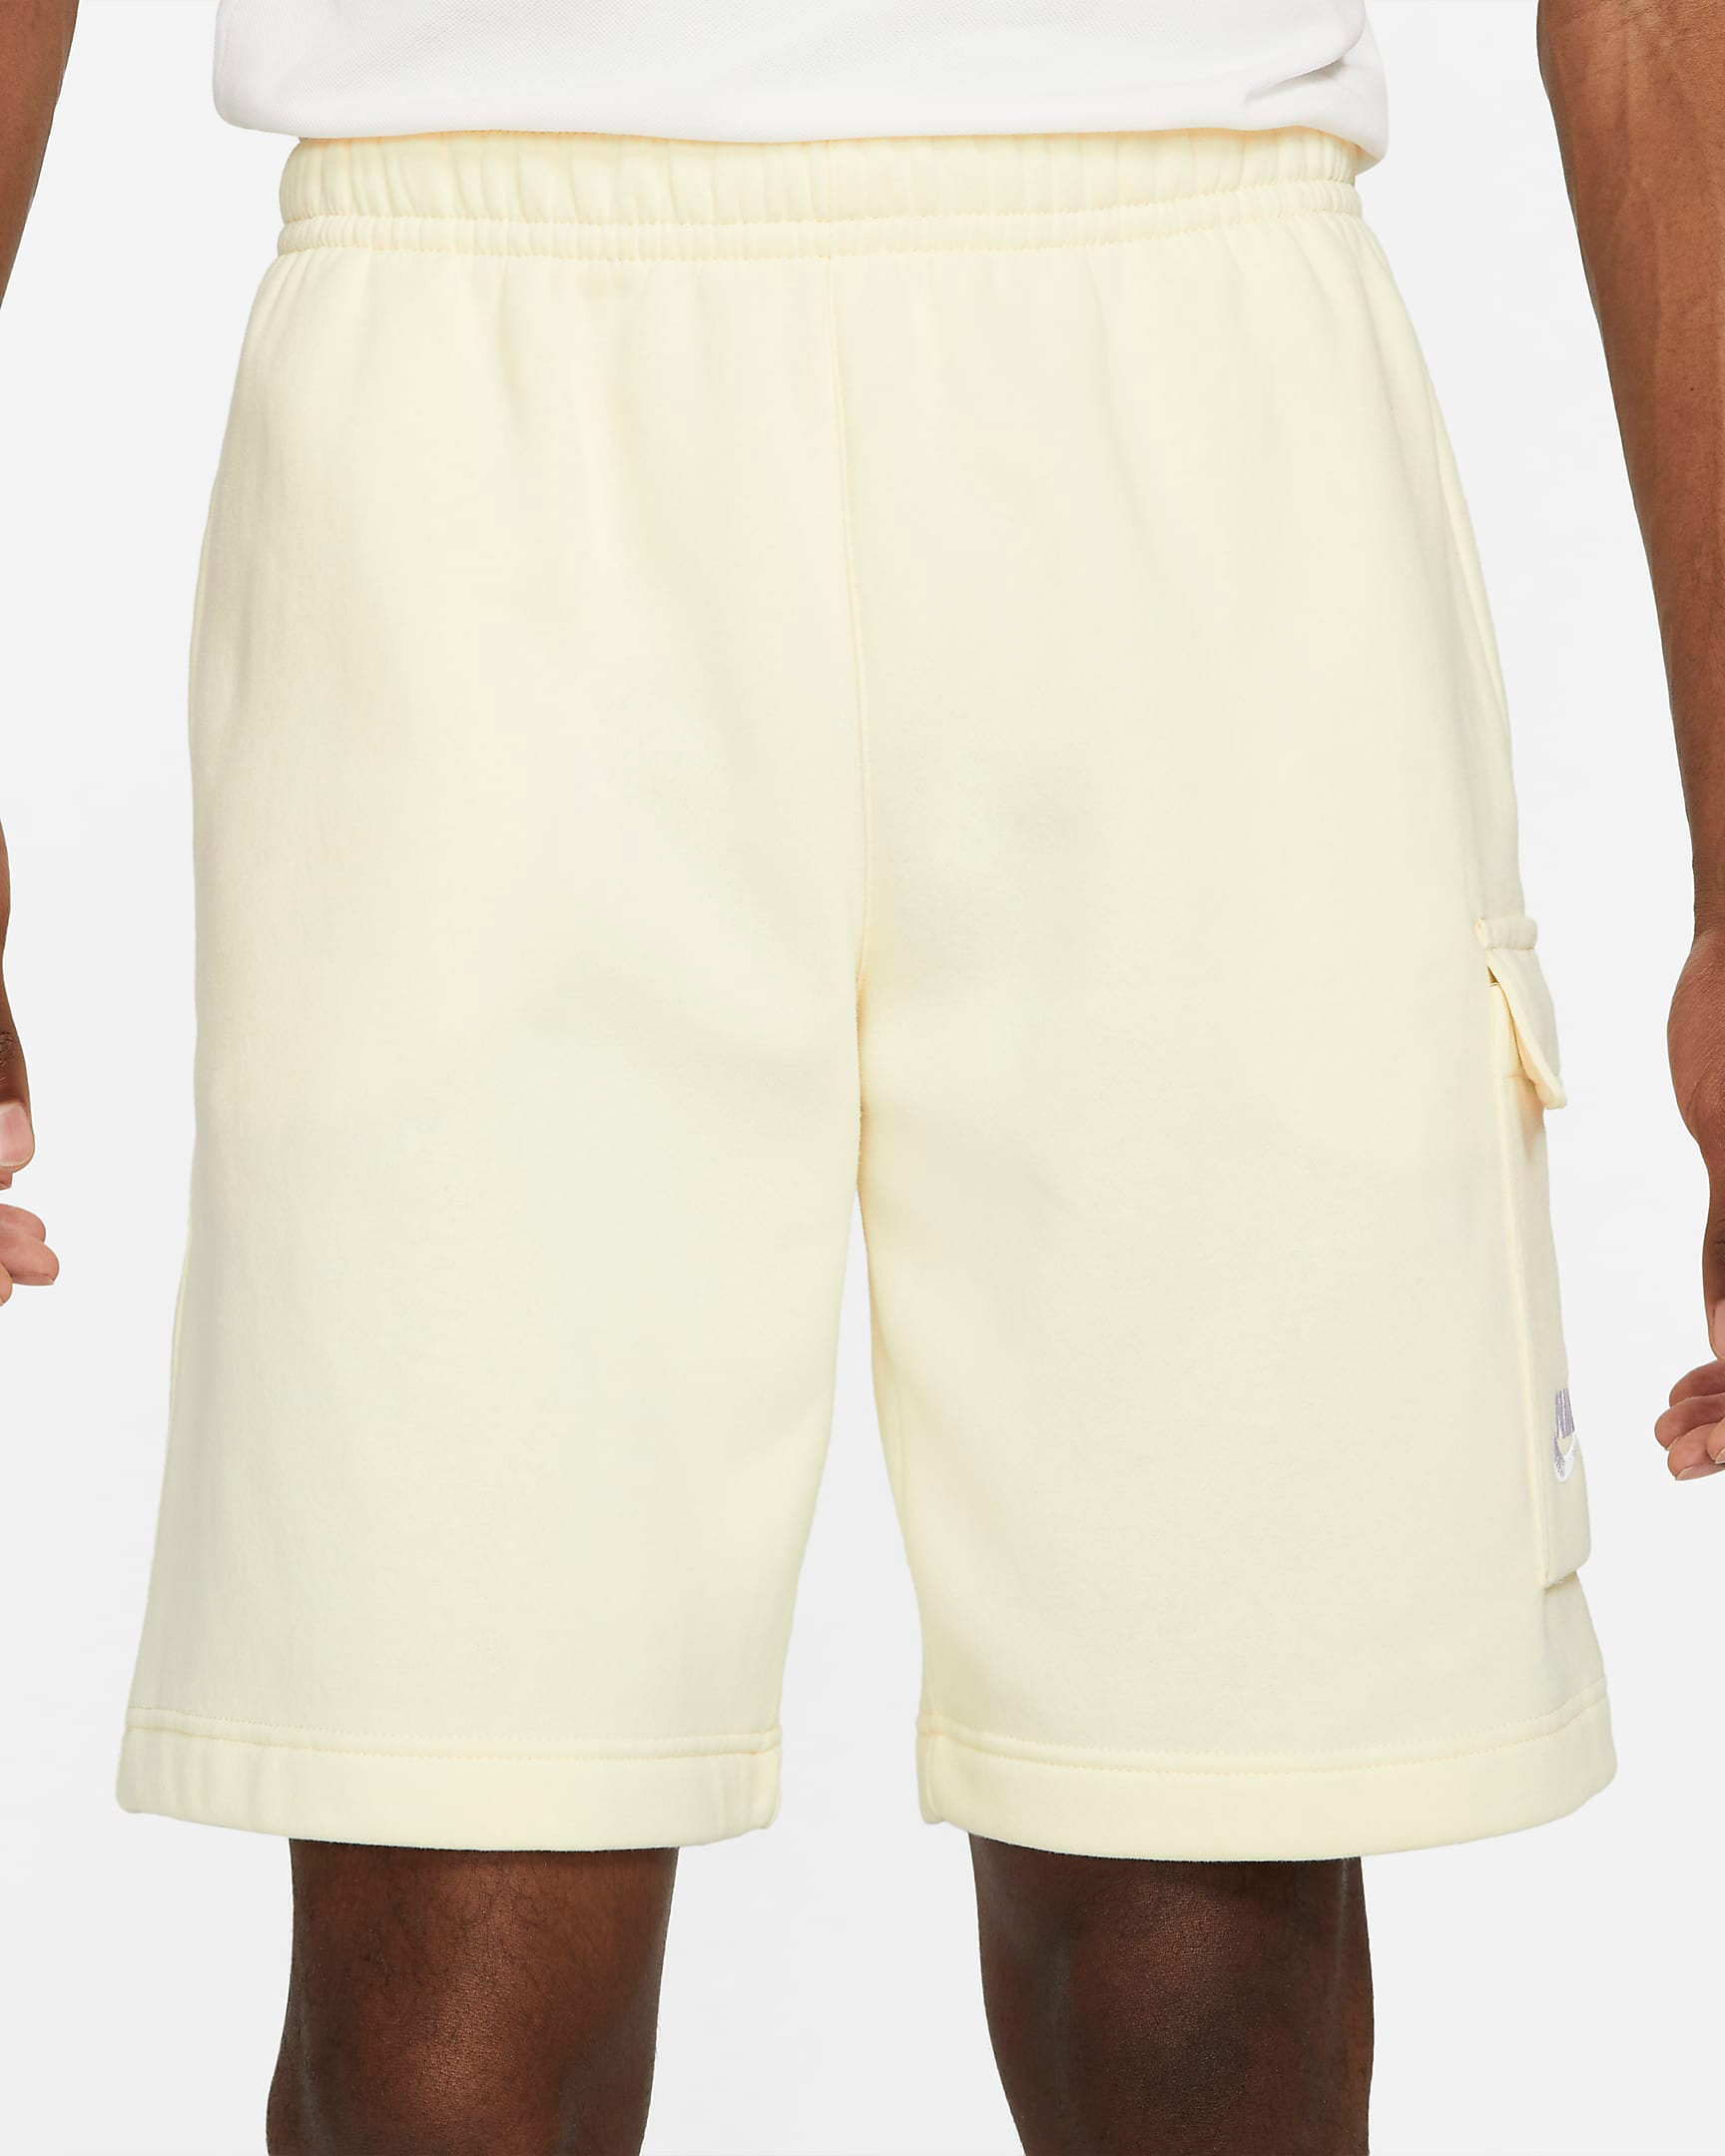 nike-coconut-milk-cargo-shorts-1